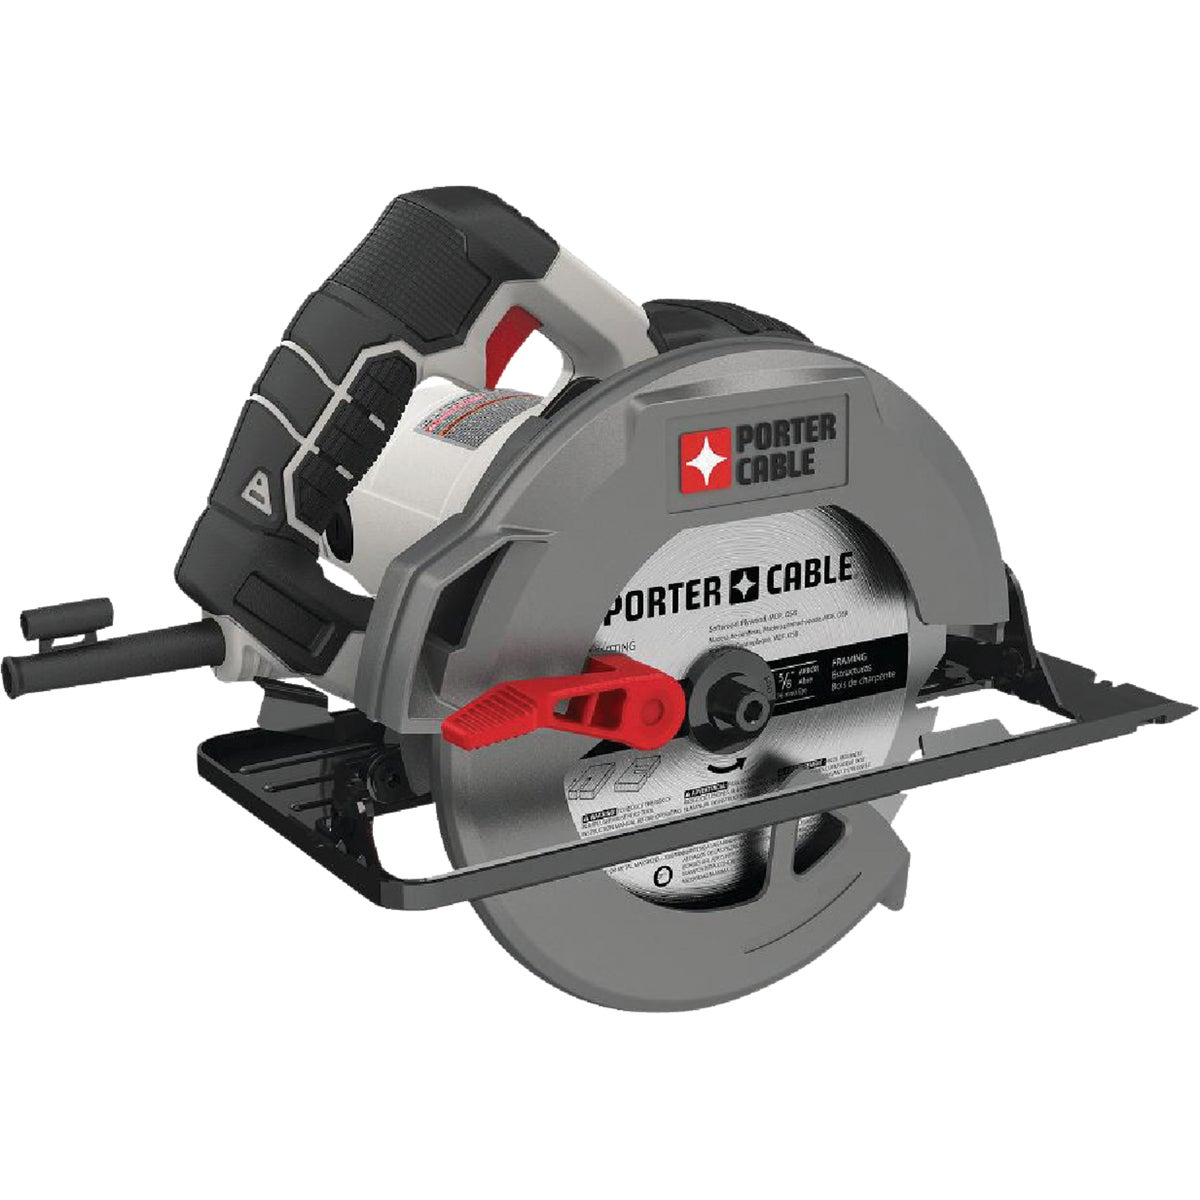 "7-1/4"" 13A CIRCULAR SAW - PC13CSL by Black & Decker"